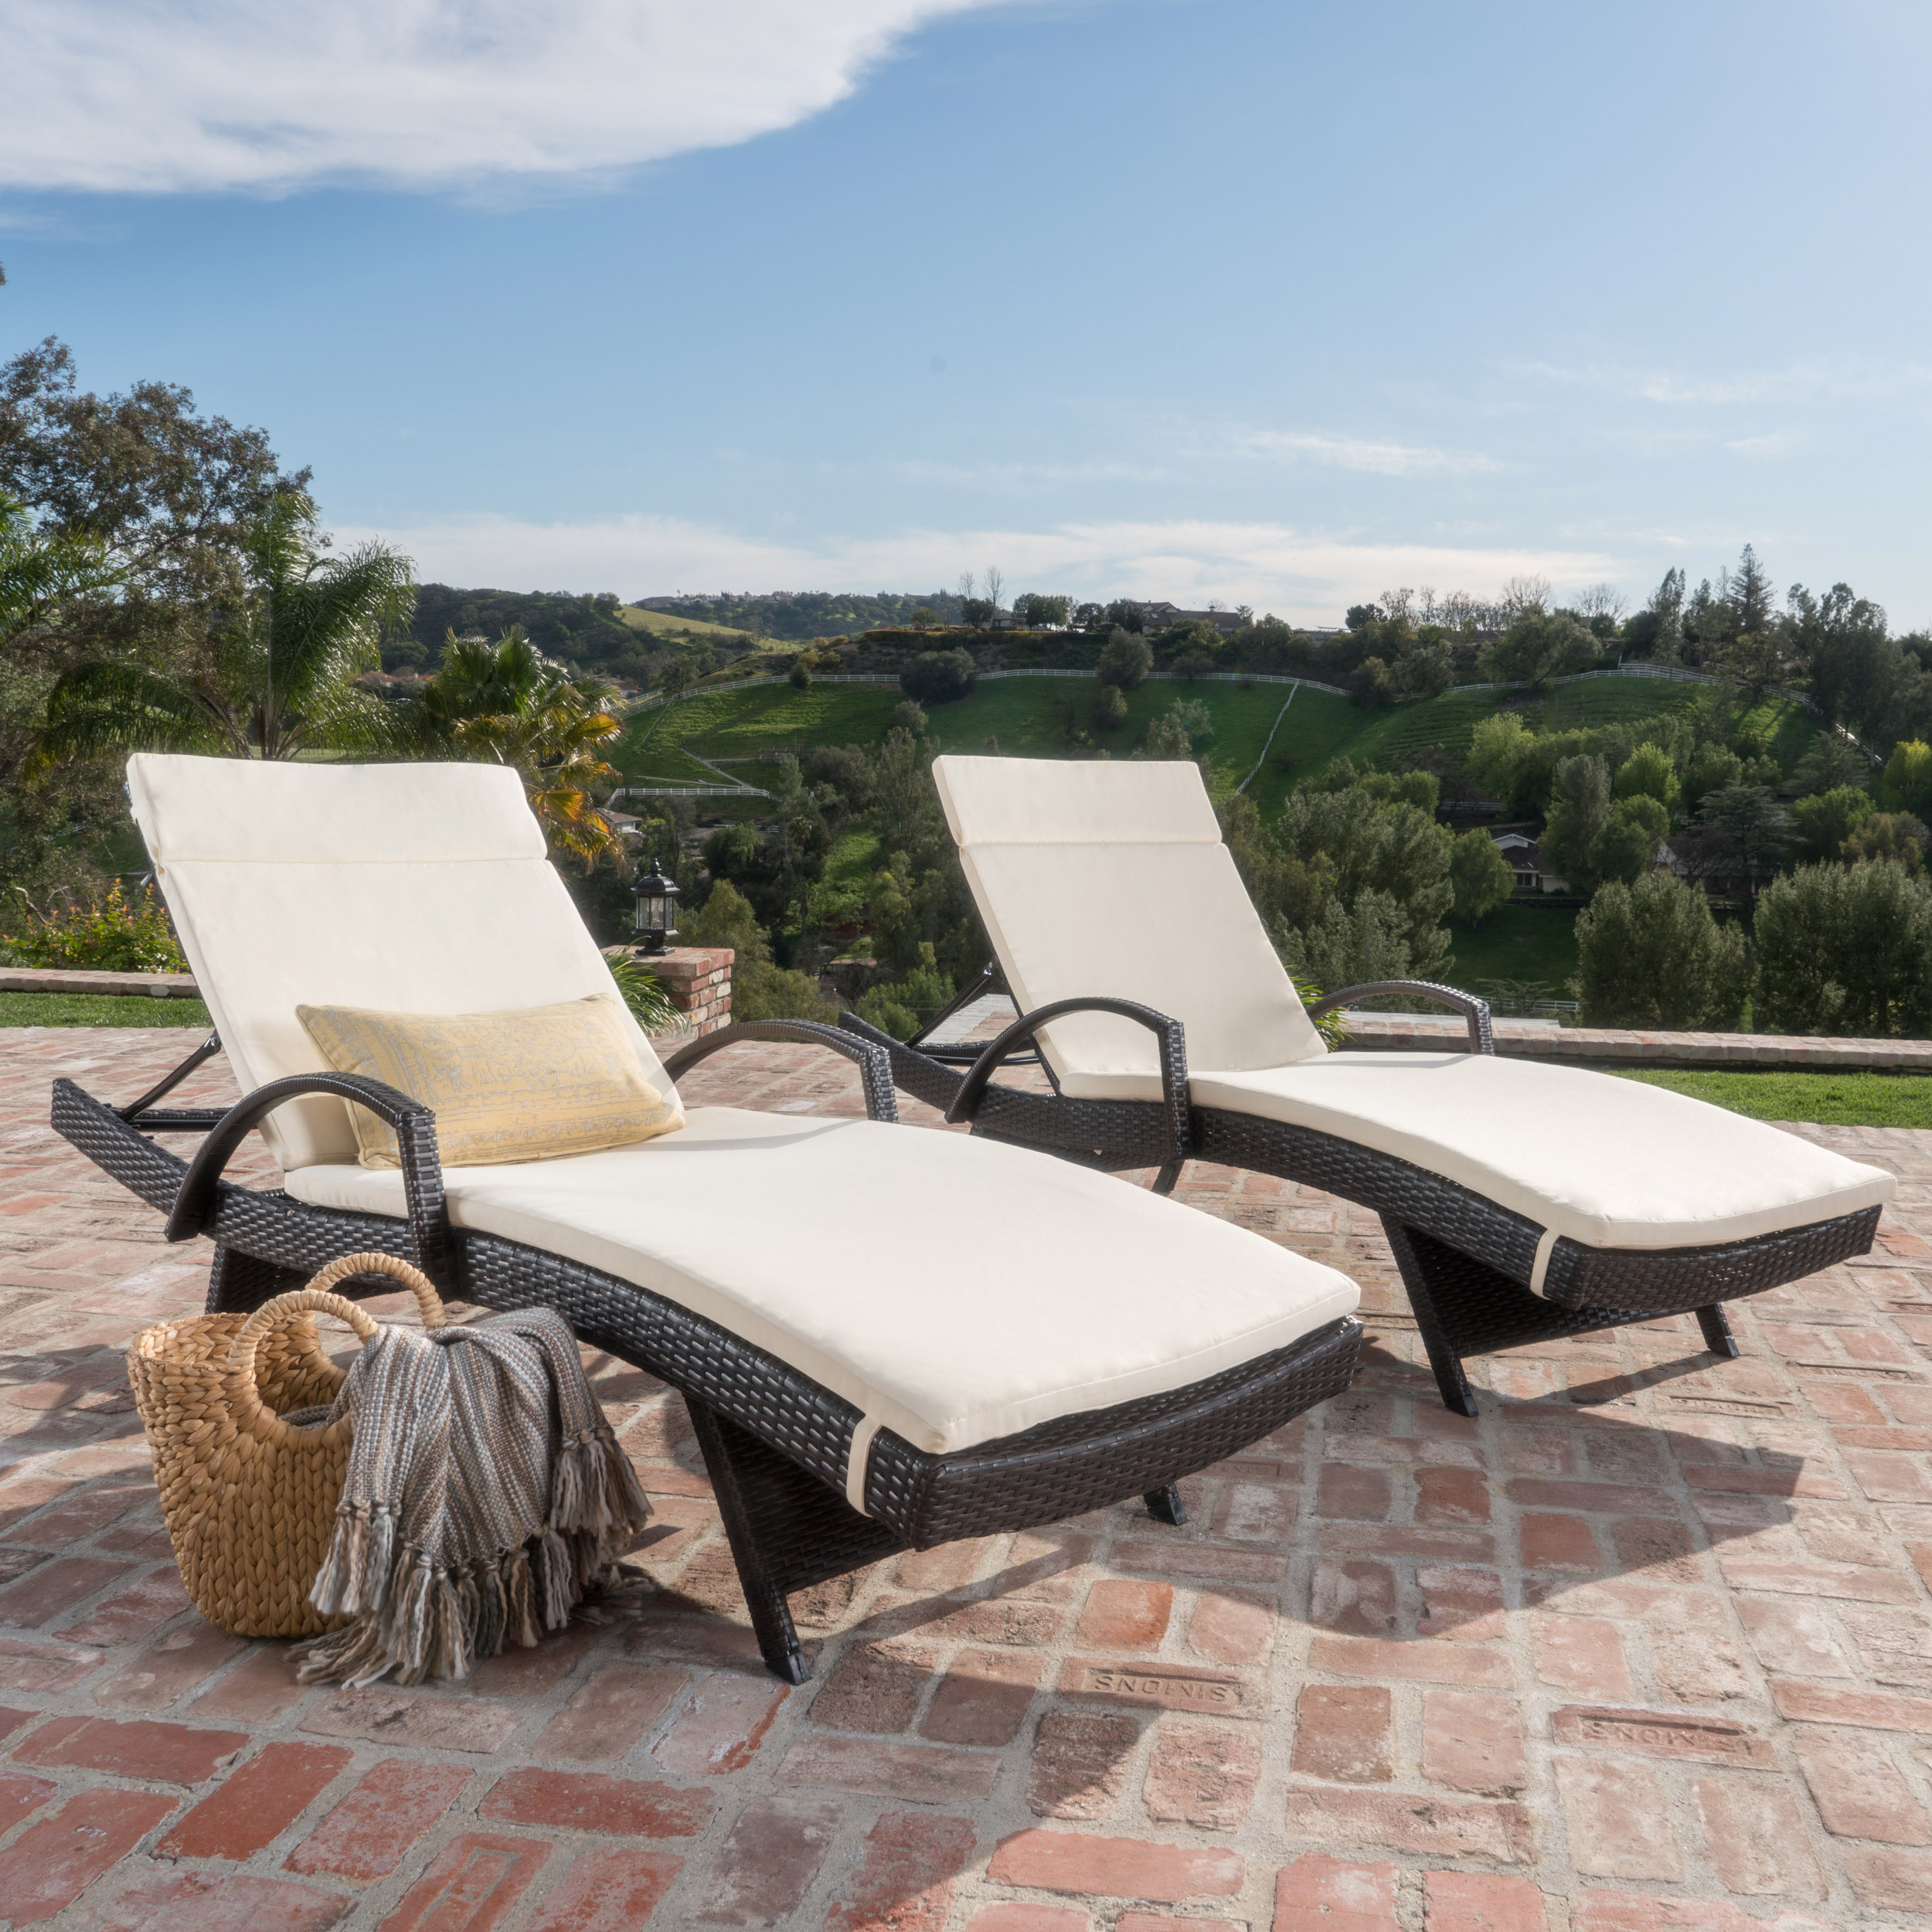 Anthony Outdoor Wicker Adjustable Chaise Lounge with Arms and Cushion, Set of 2, Multibrown, Ivory